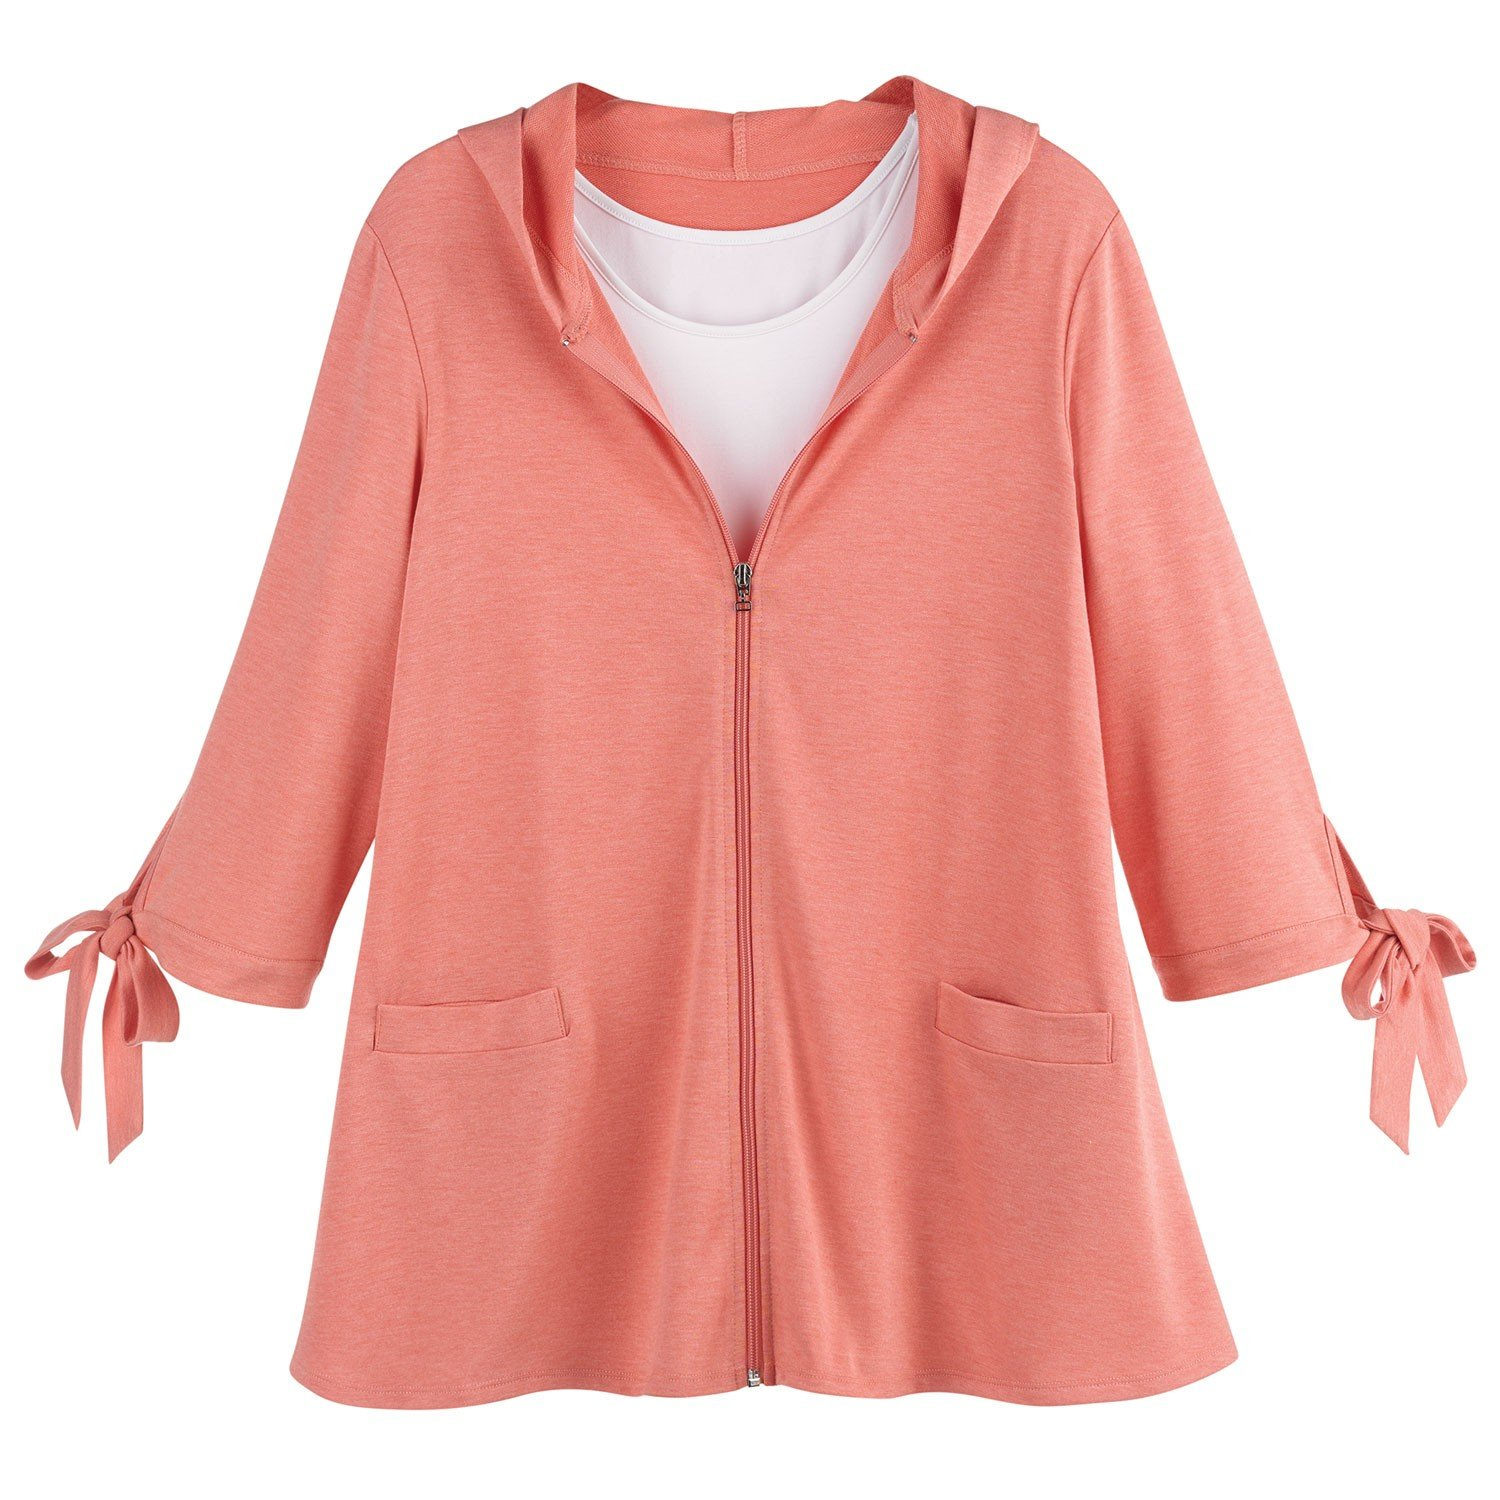 Ahh By Rhonda Shear Women's Zippered Swing Jacket - Tie Cuff 3/4 Sleeve Hoodie - Coral - Large by Ahh By Rhonda Shear (Image #2)